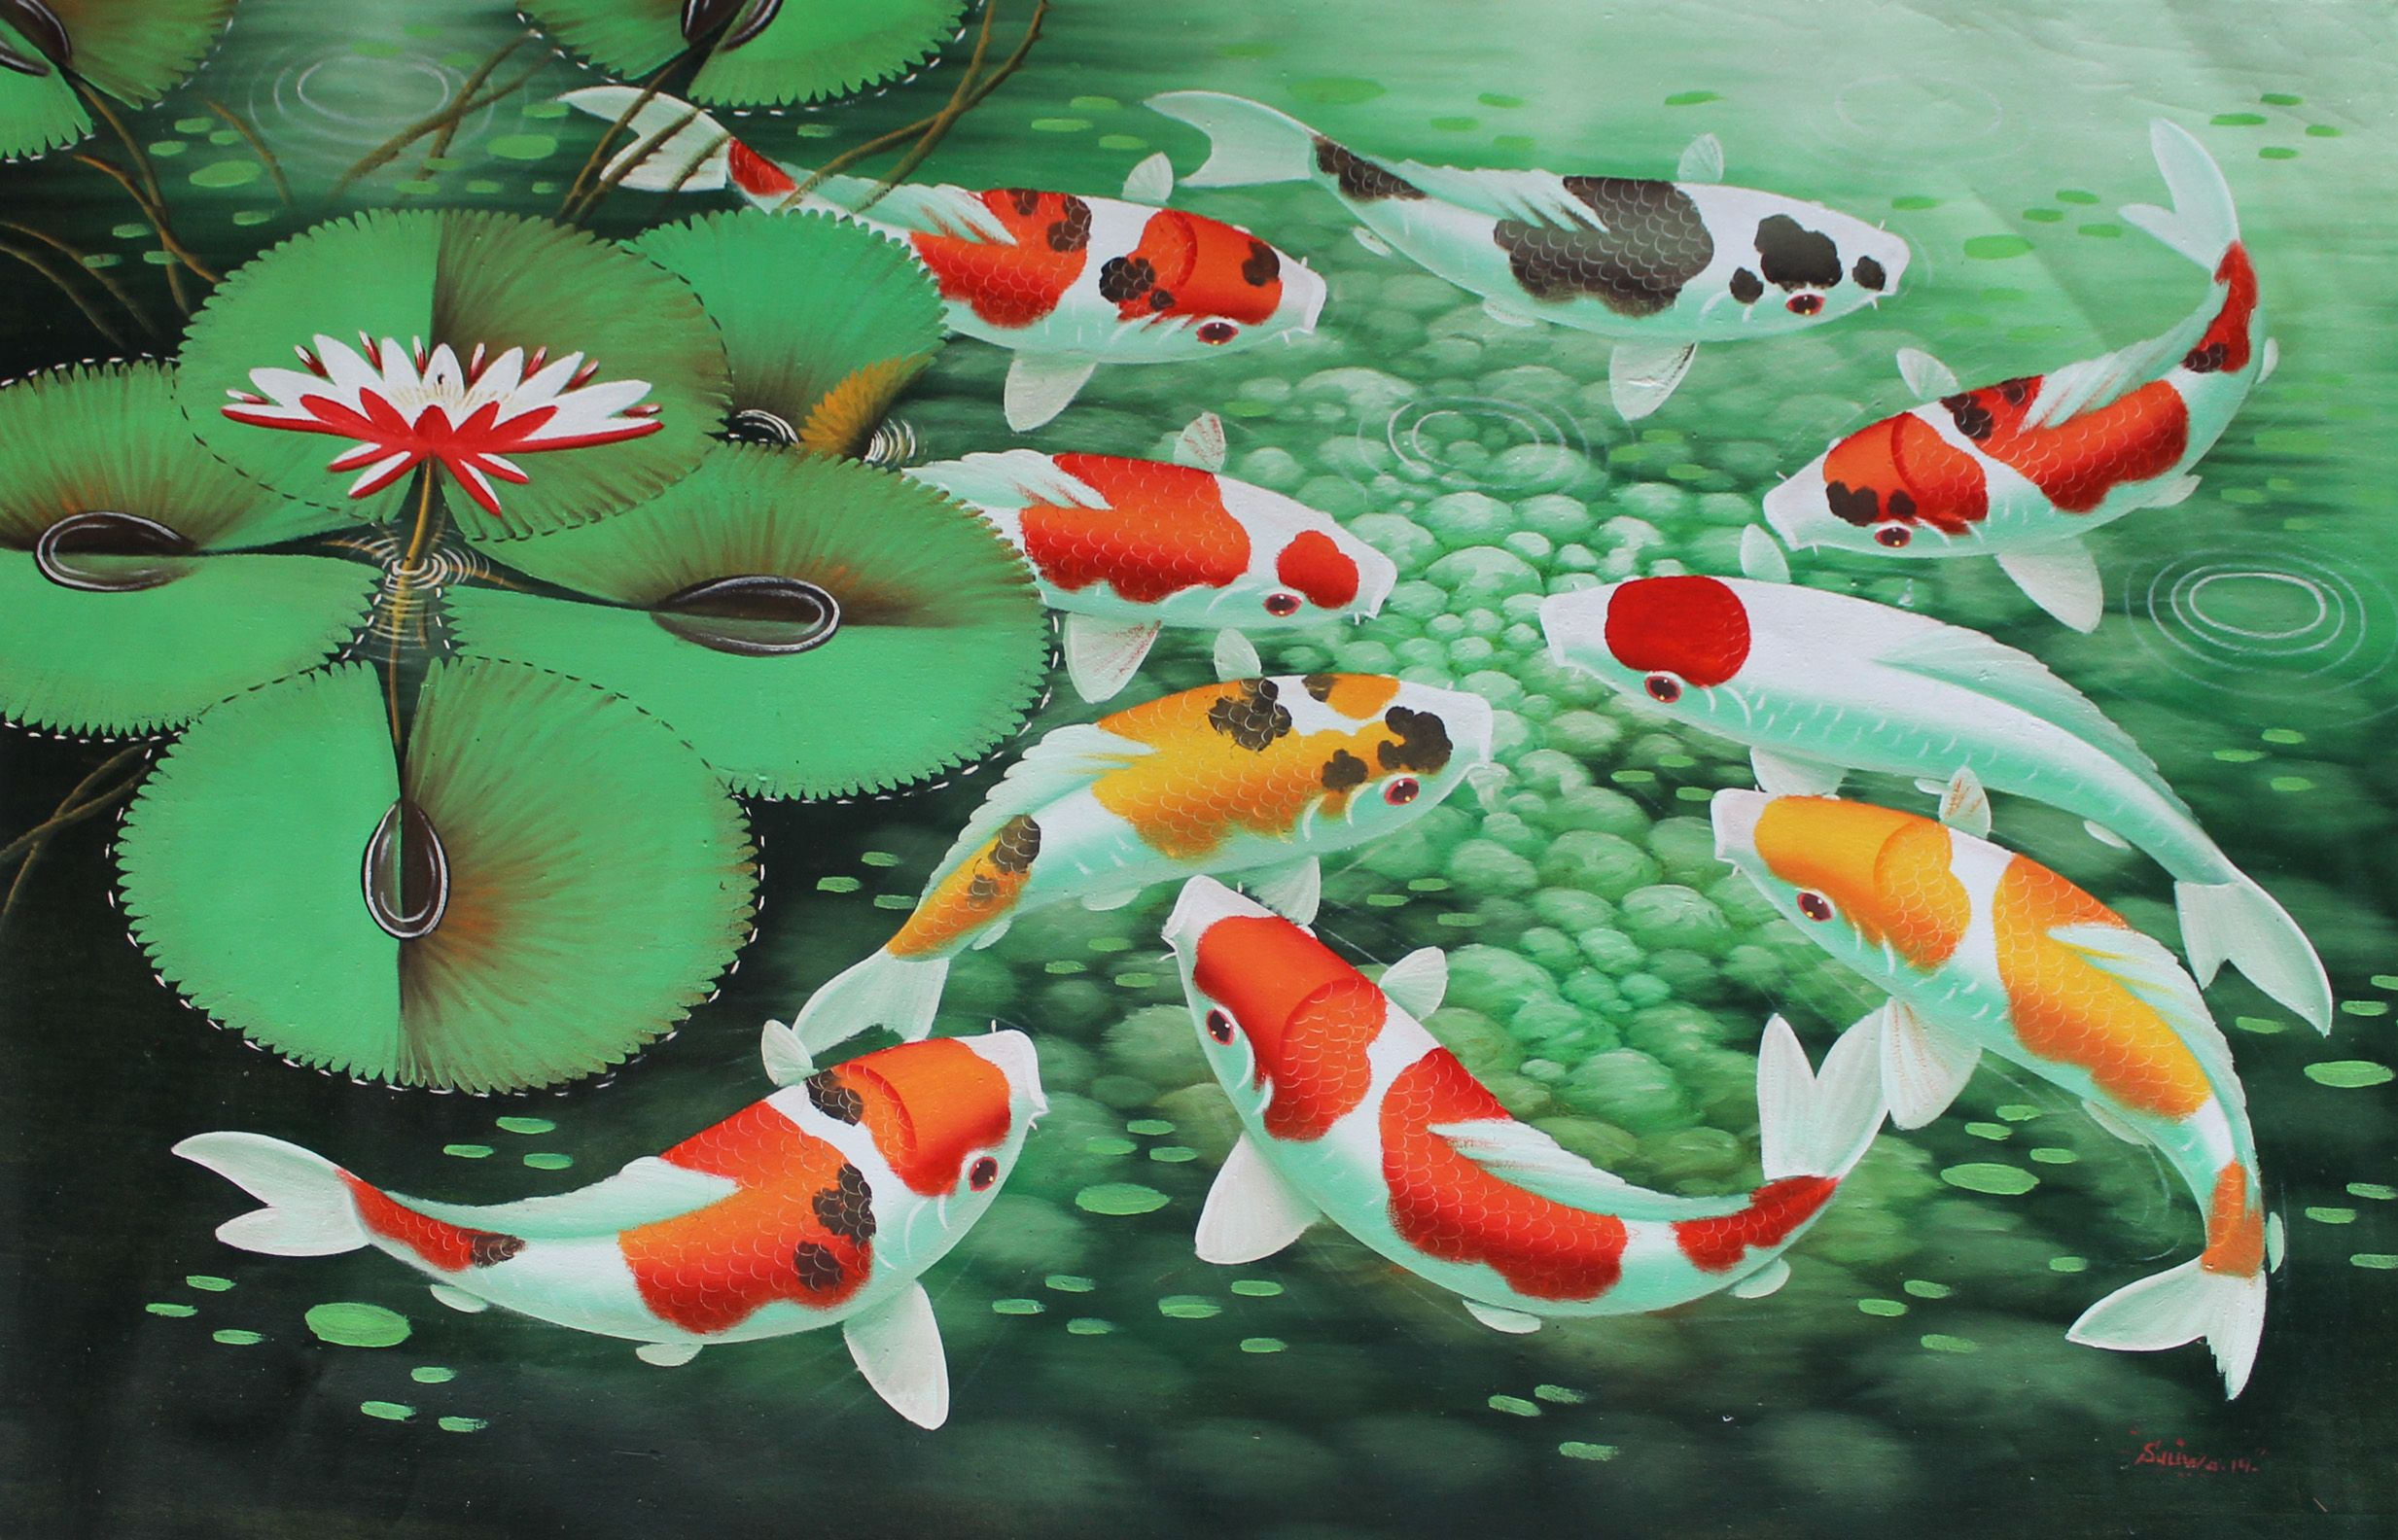 Koi fish painting wallpaper love of koi pinterest for Koi goldfisch